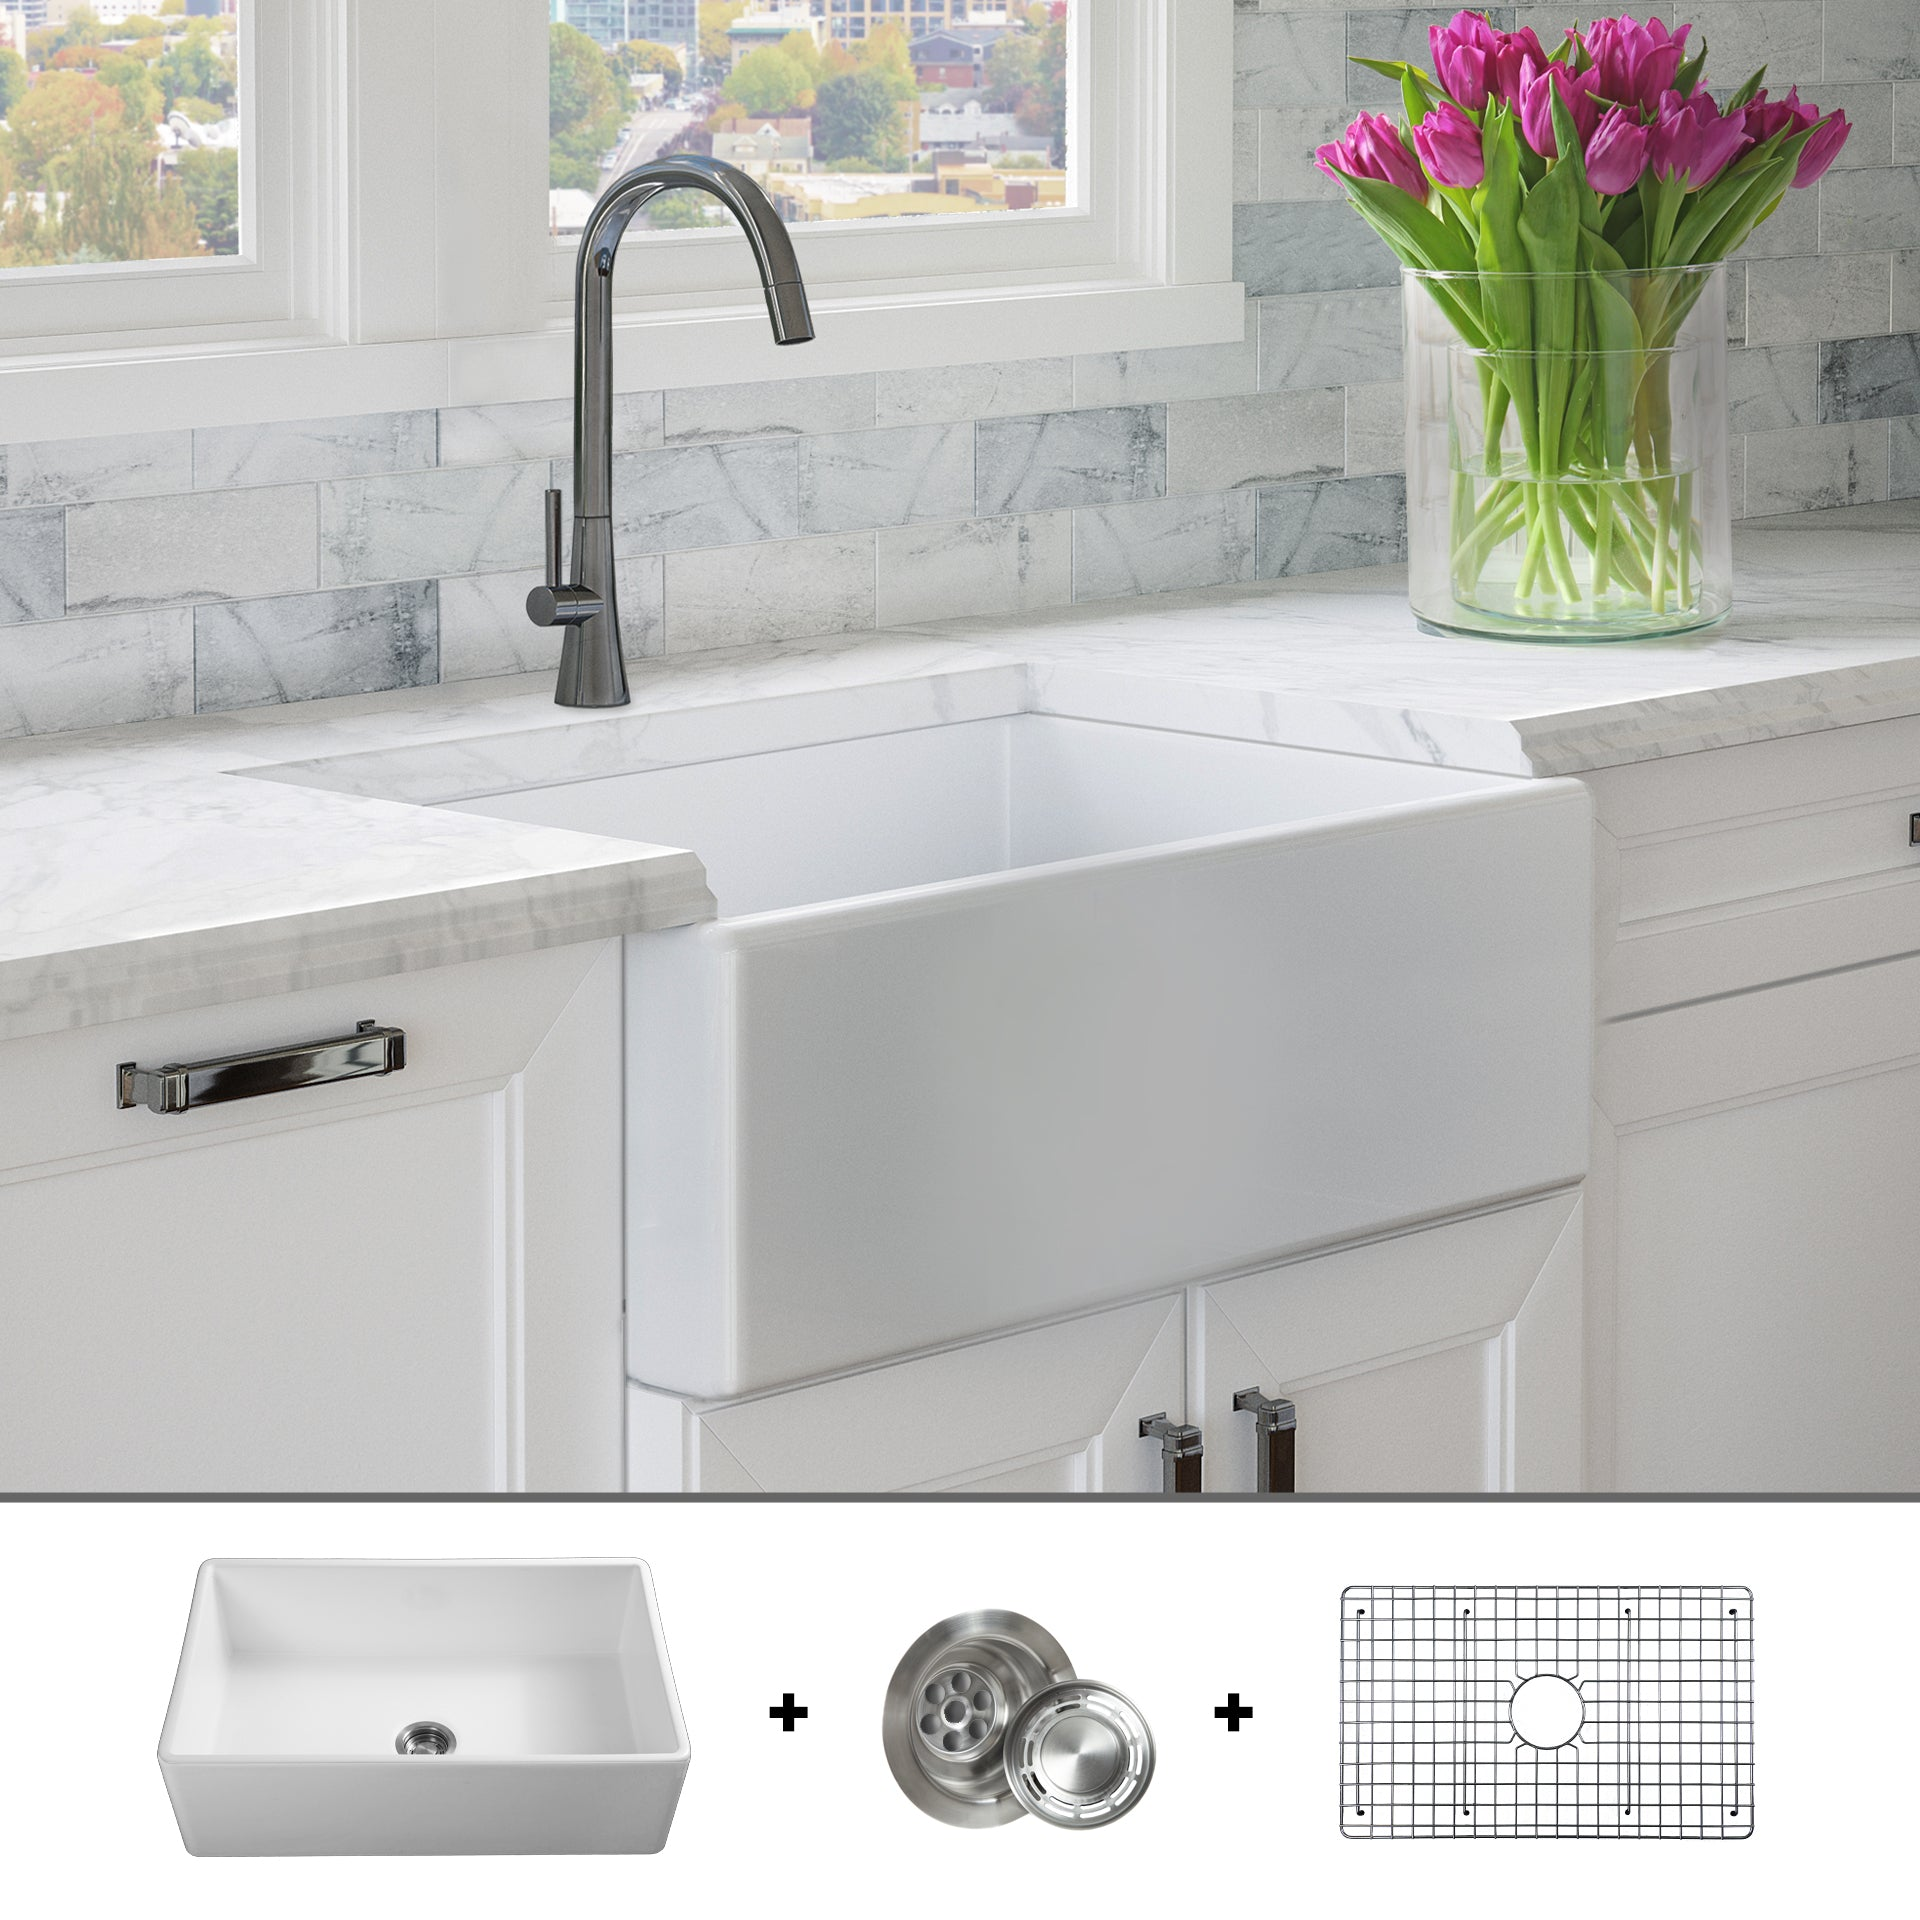 Fsw1001 Luxury 30 Inch Pure Fireclay Modern Farmhouse Sink In White